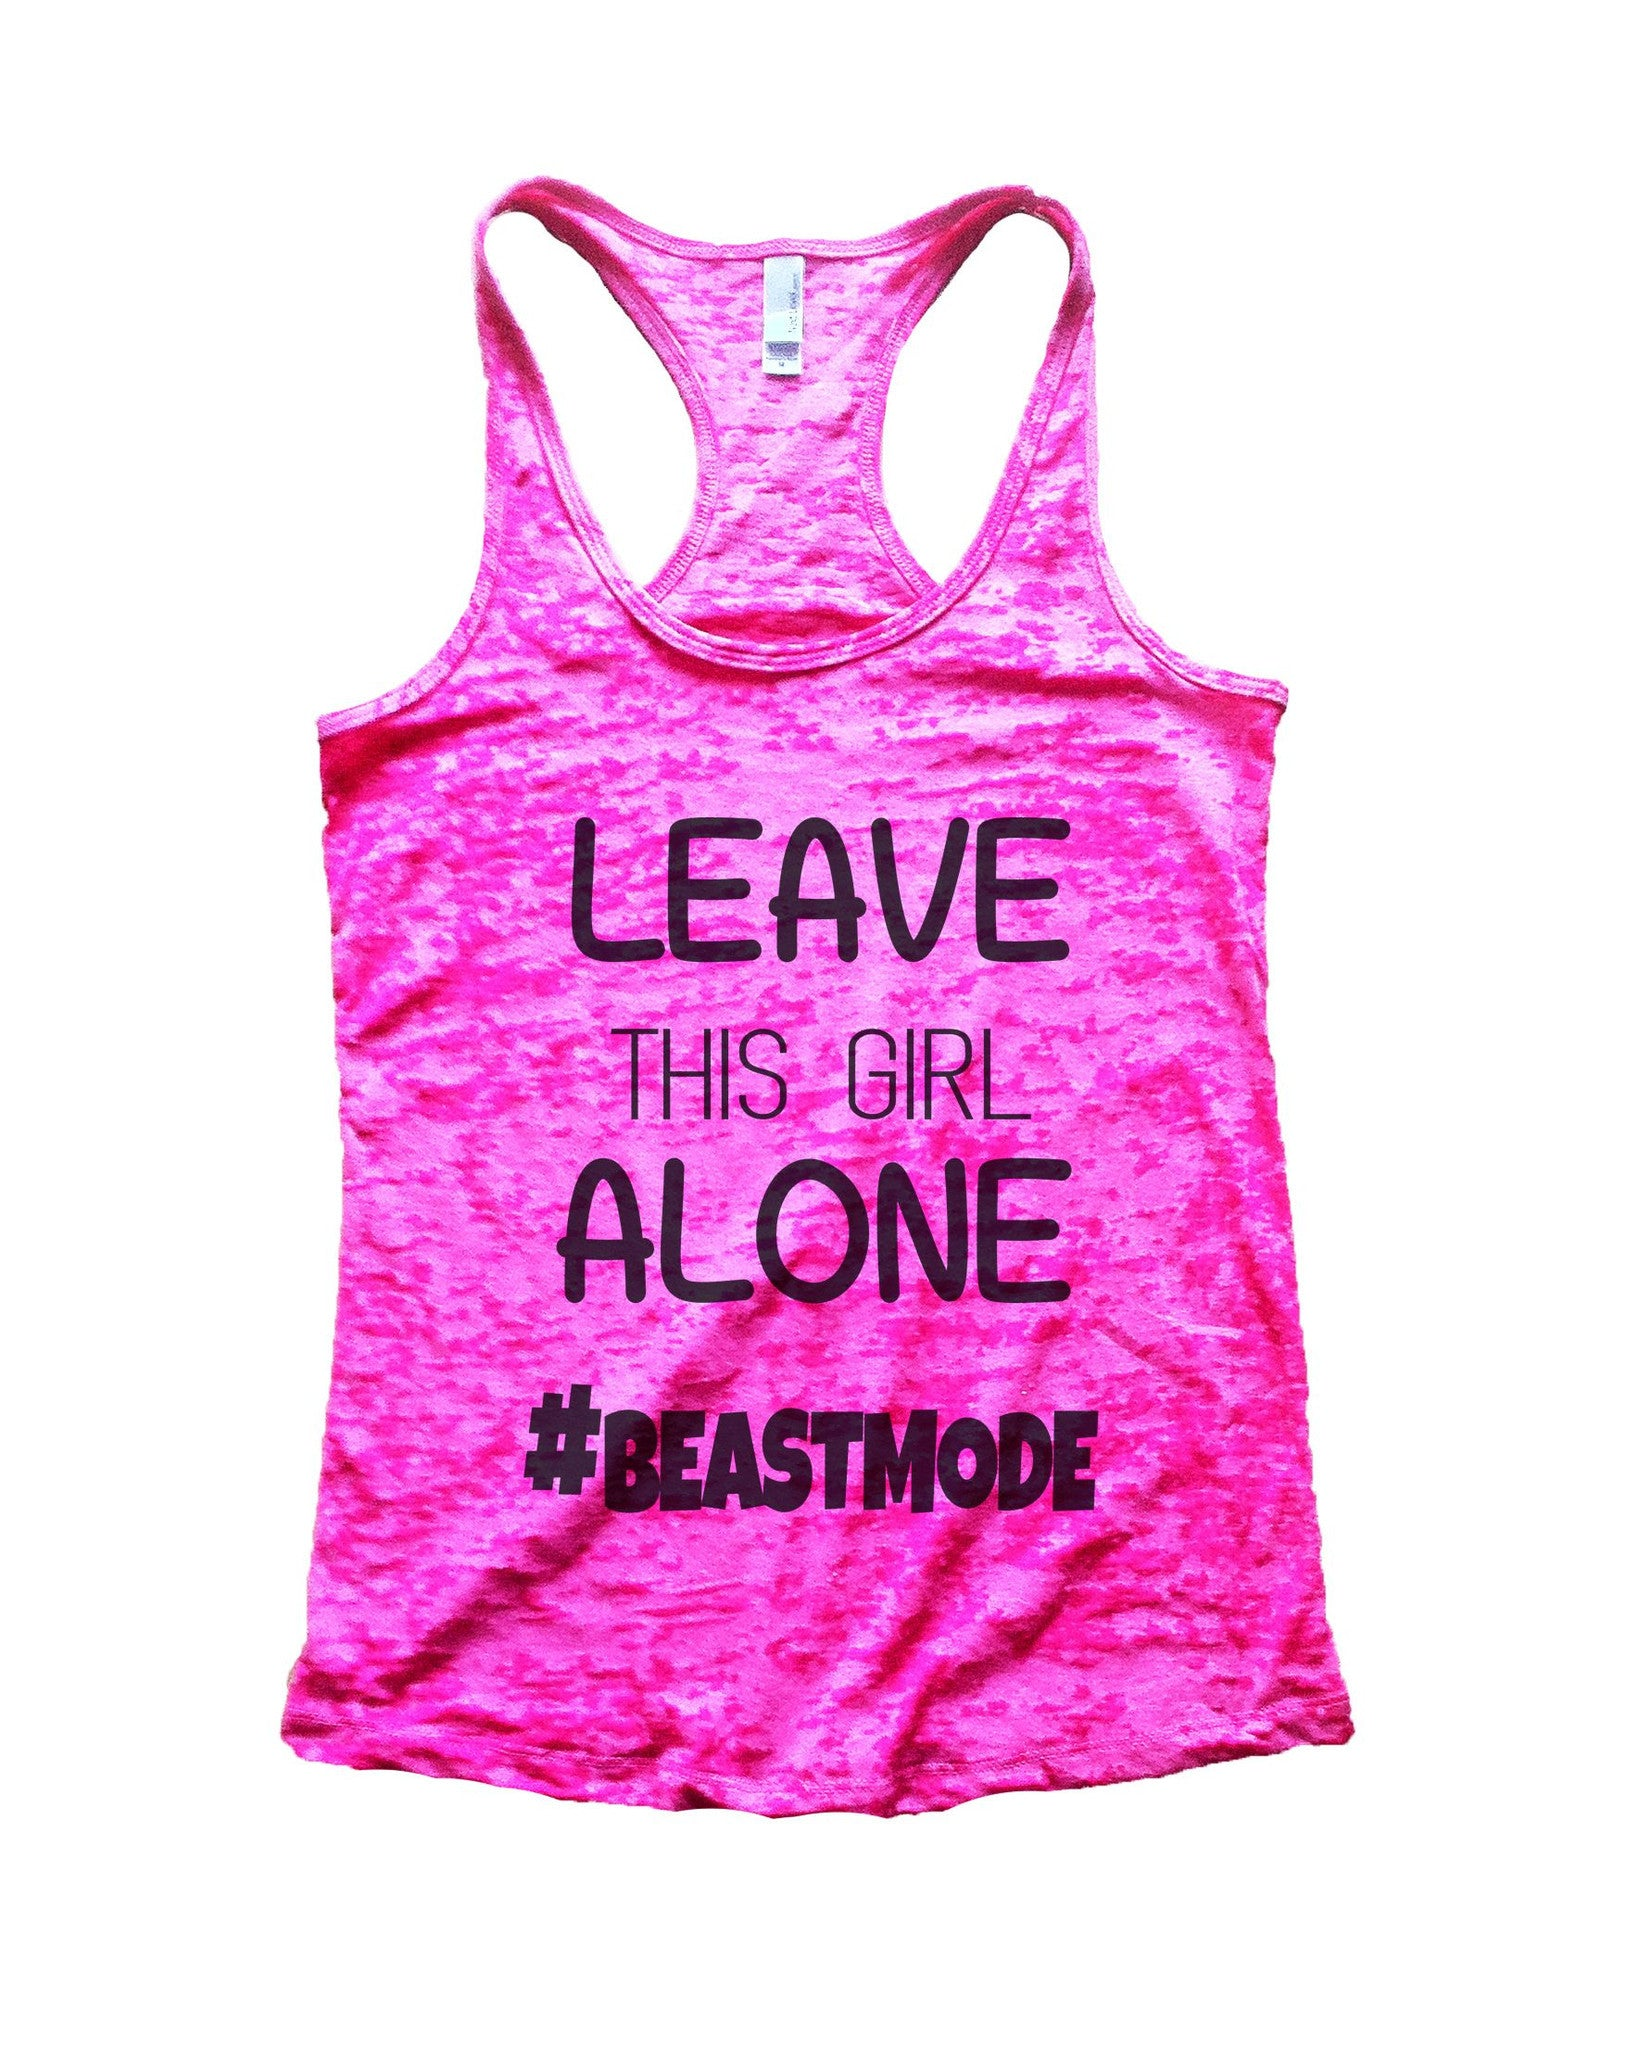 Leave This Girl Alone Beastmode Burnout Tank Top By BurnoutTankTops.com - 638 - Funny Shirts Tank Tops Burnouts and Triblends  - 1